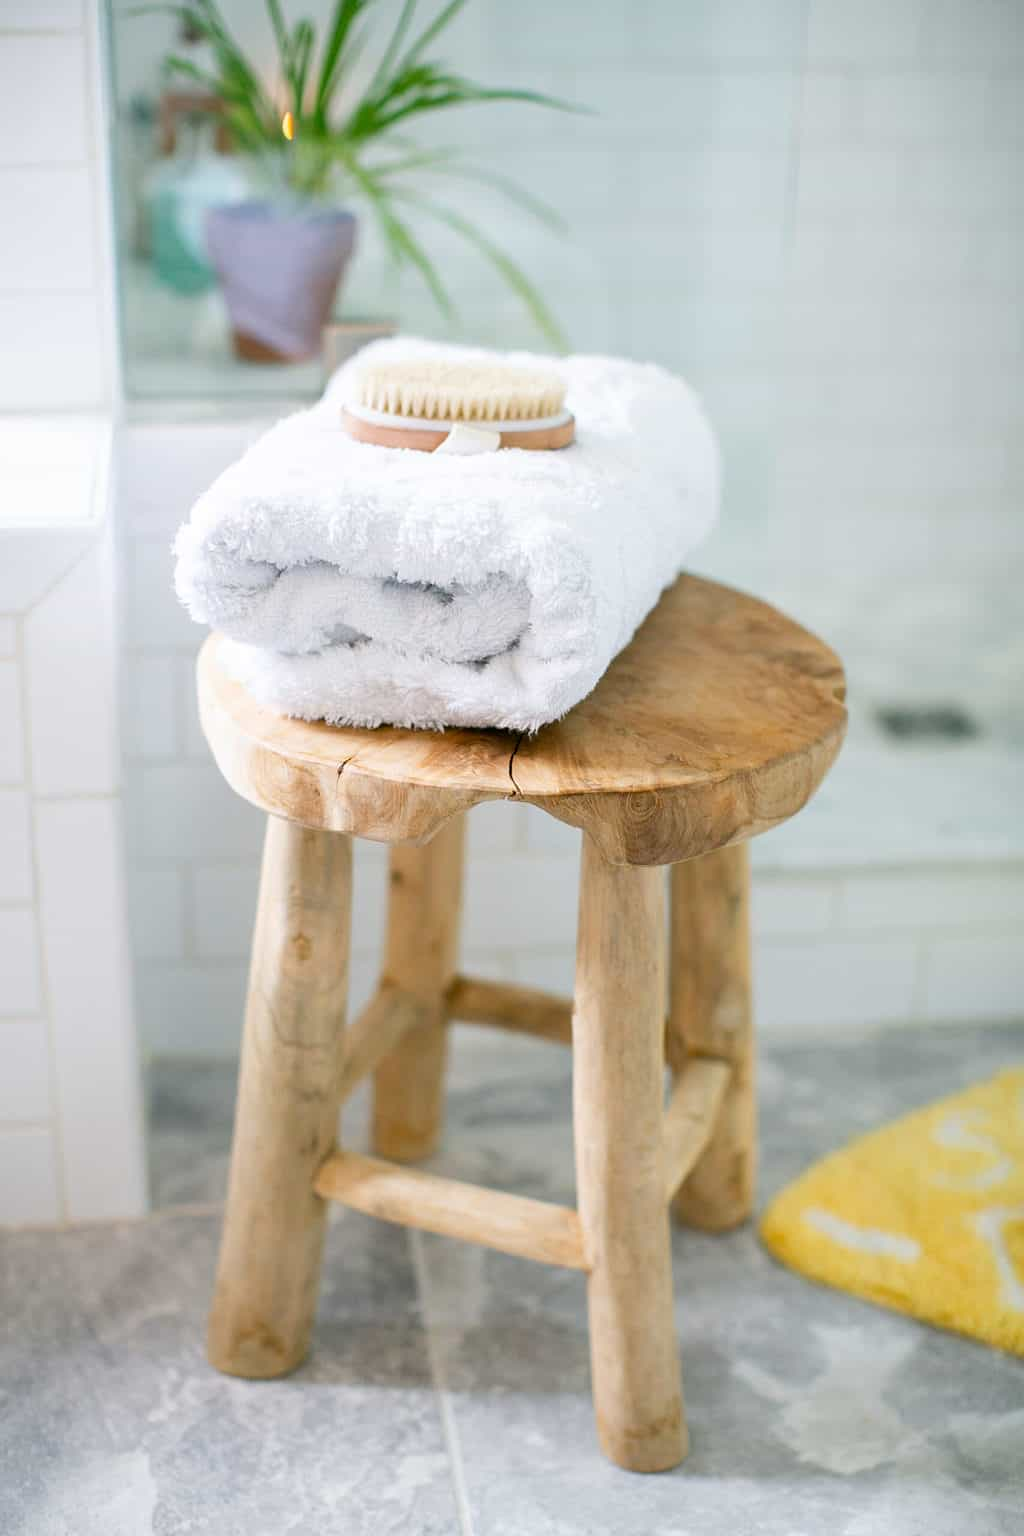 Upgrade your towel & mat for a shower oasis